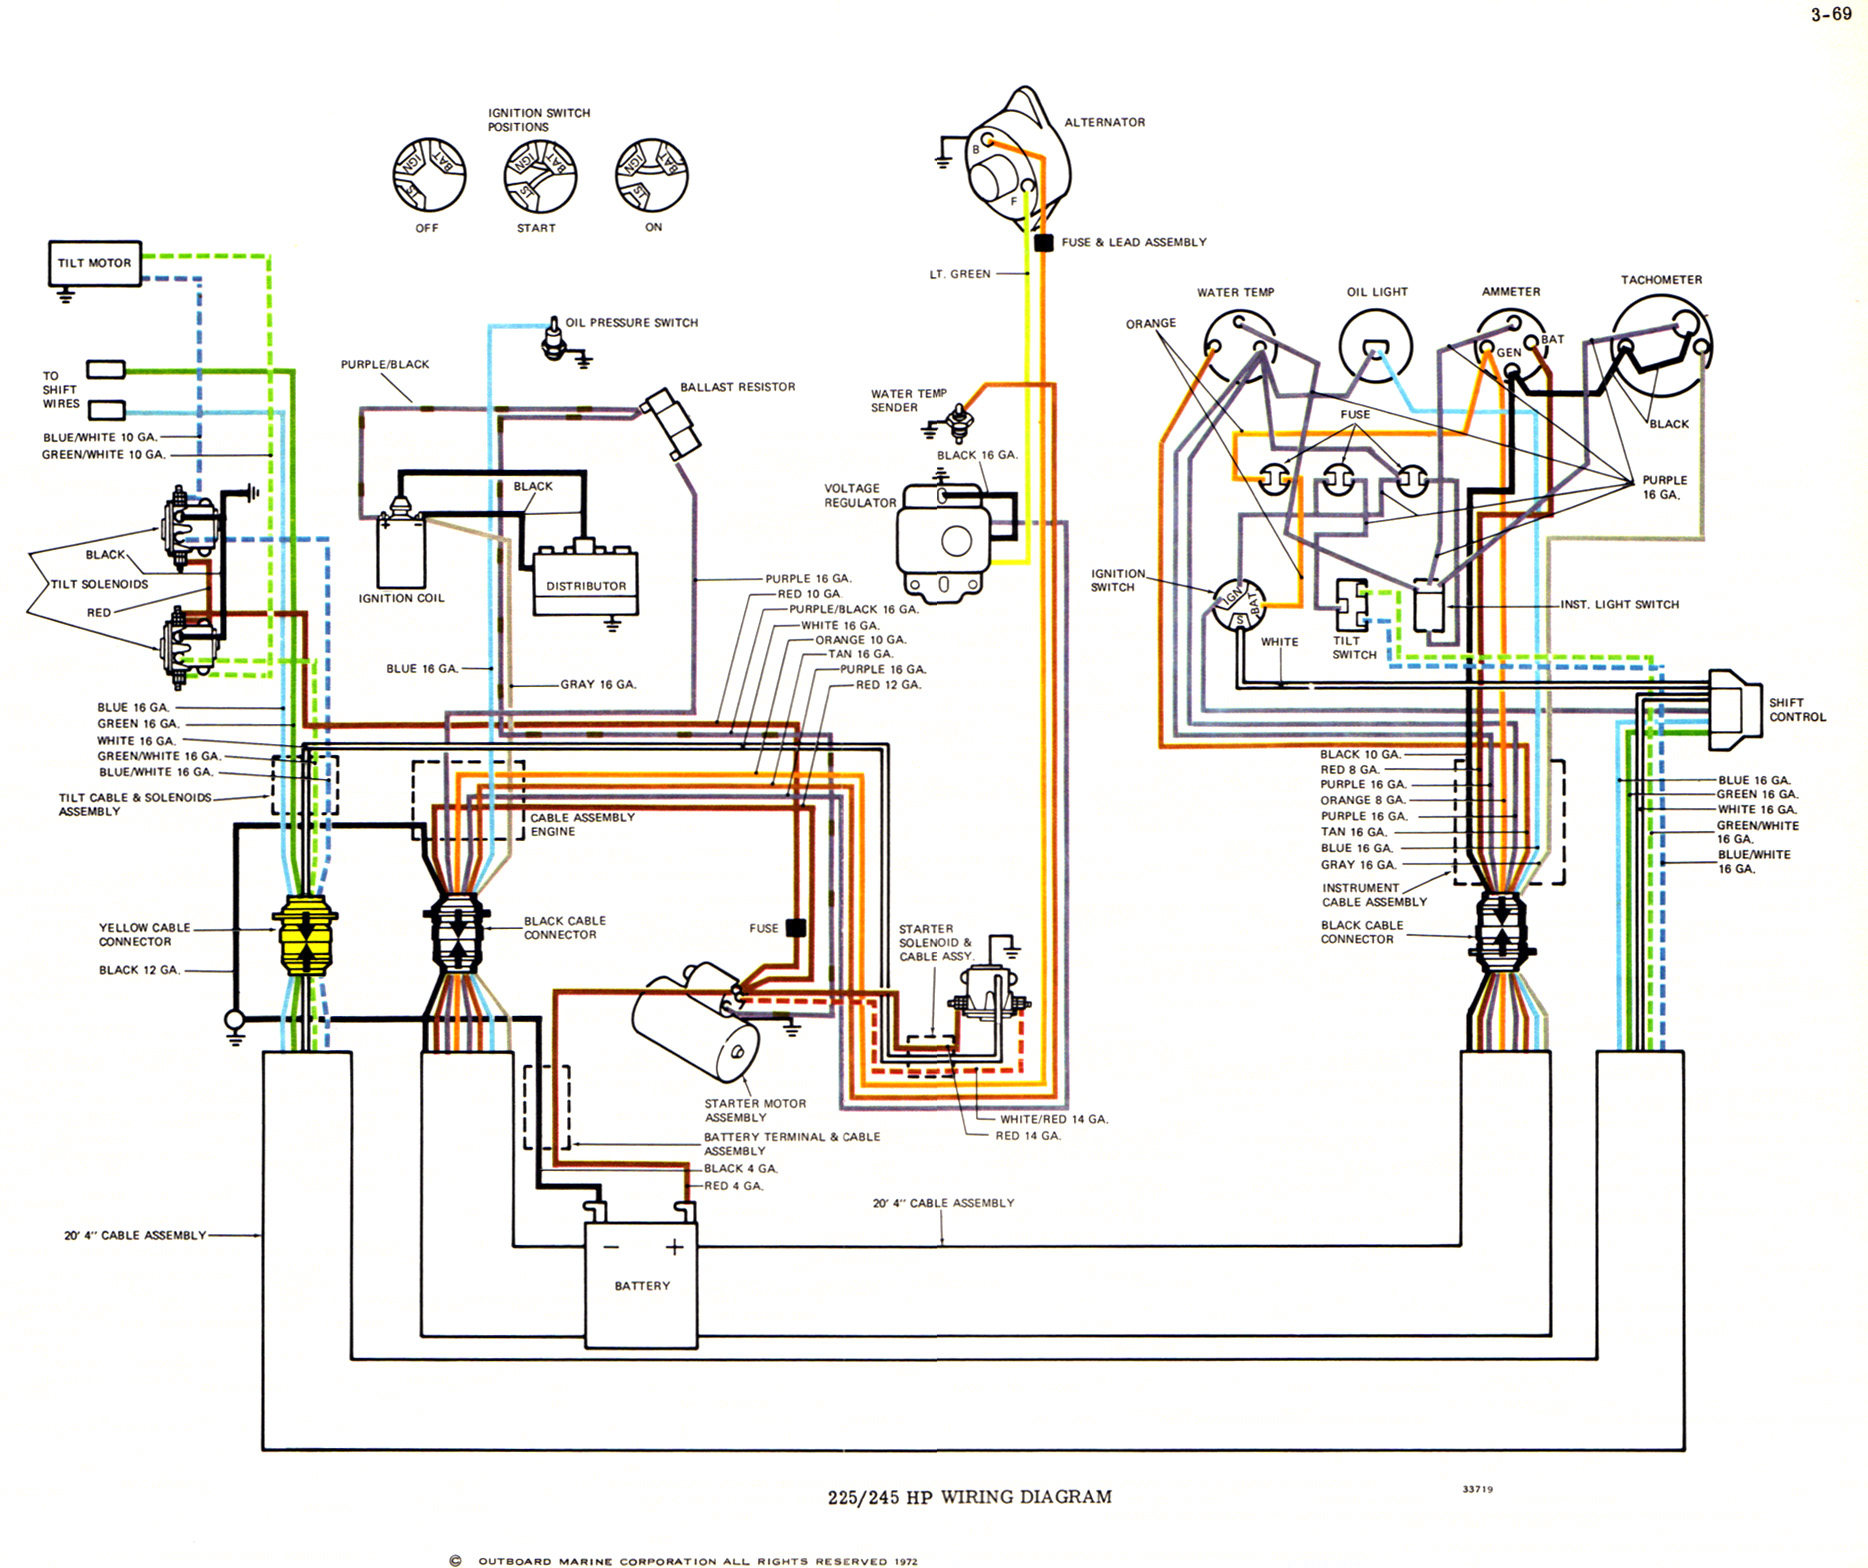 93 Omc Wiring Diagram Wiring Diagram Schematics 1999 Evinrude Wiring Diagram  1987 Evinrude Ignition Switch Wiring Diagram